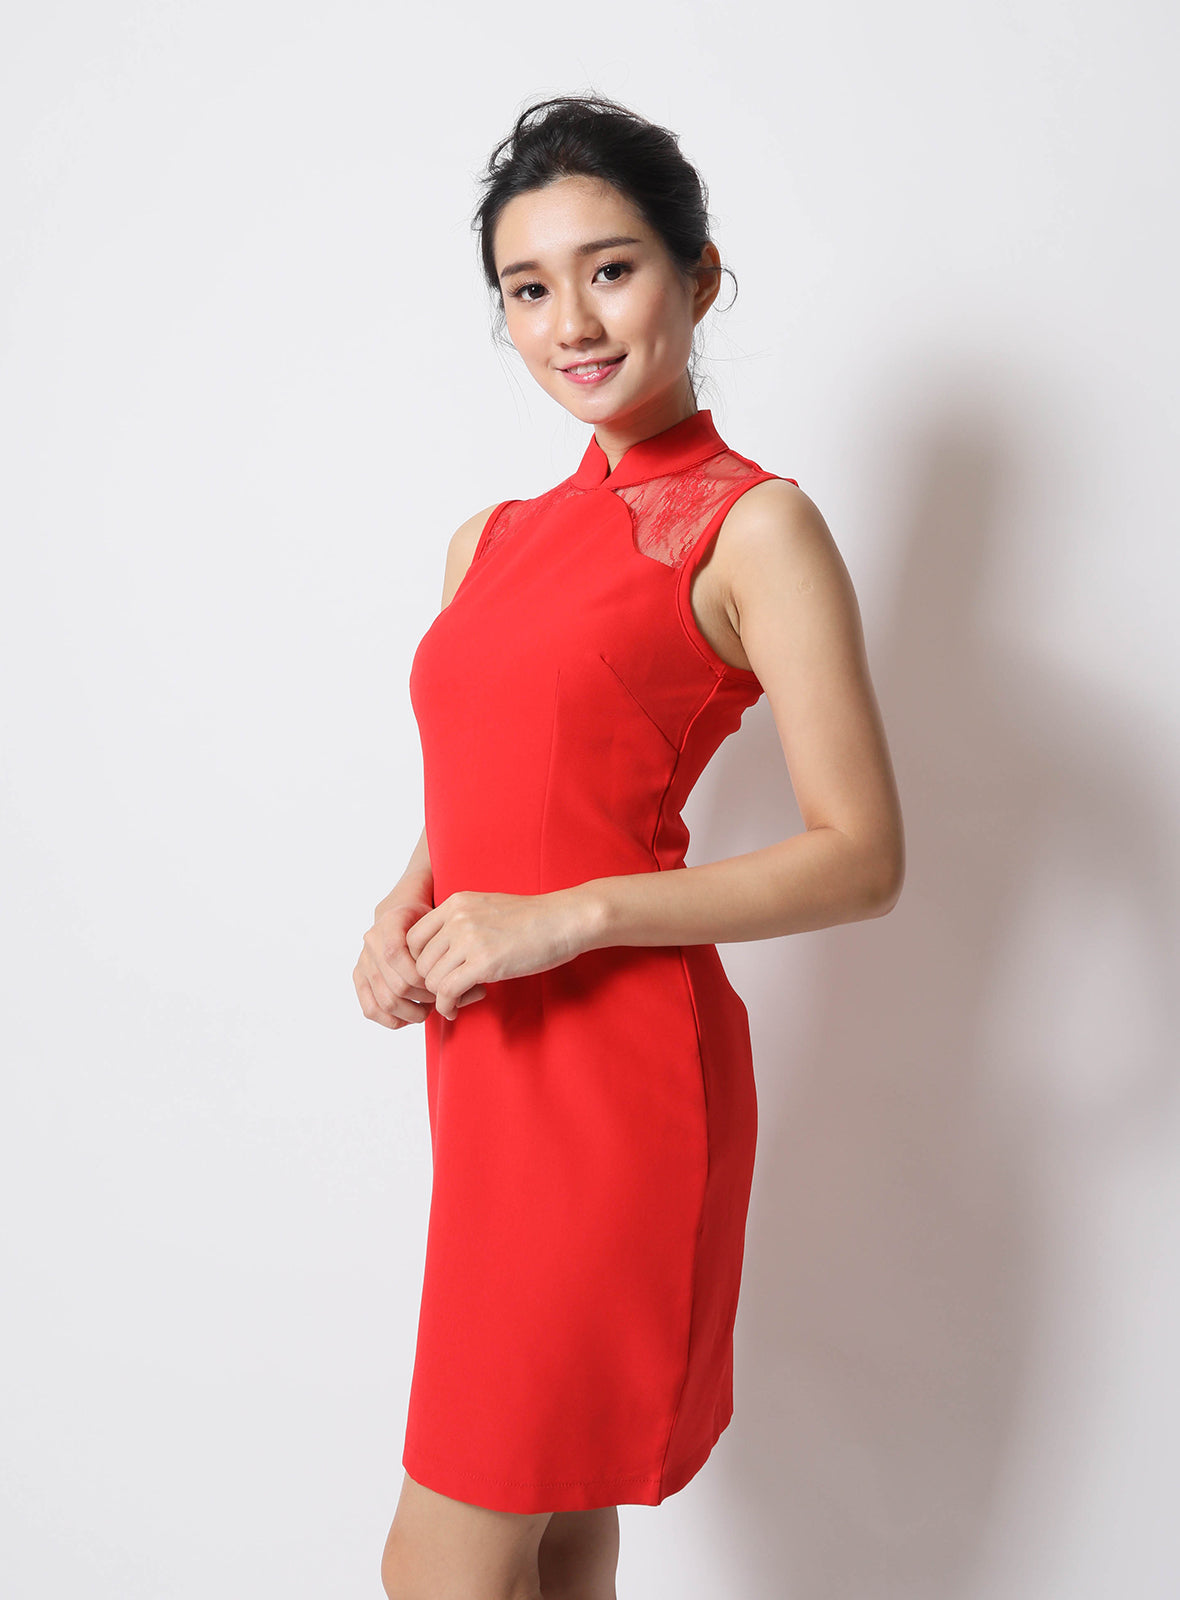 Tao Qi Pao in Red